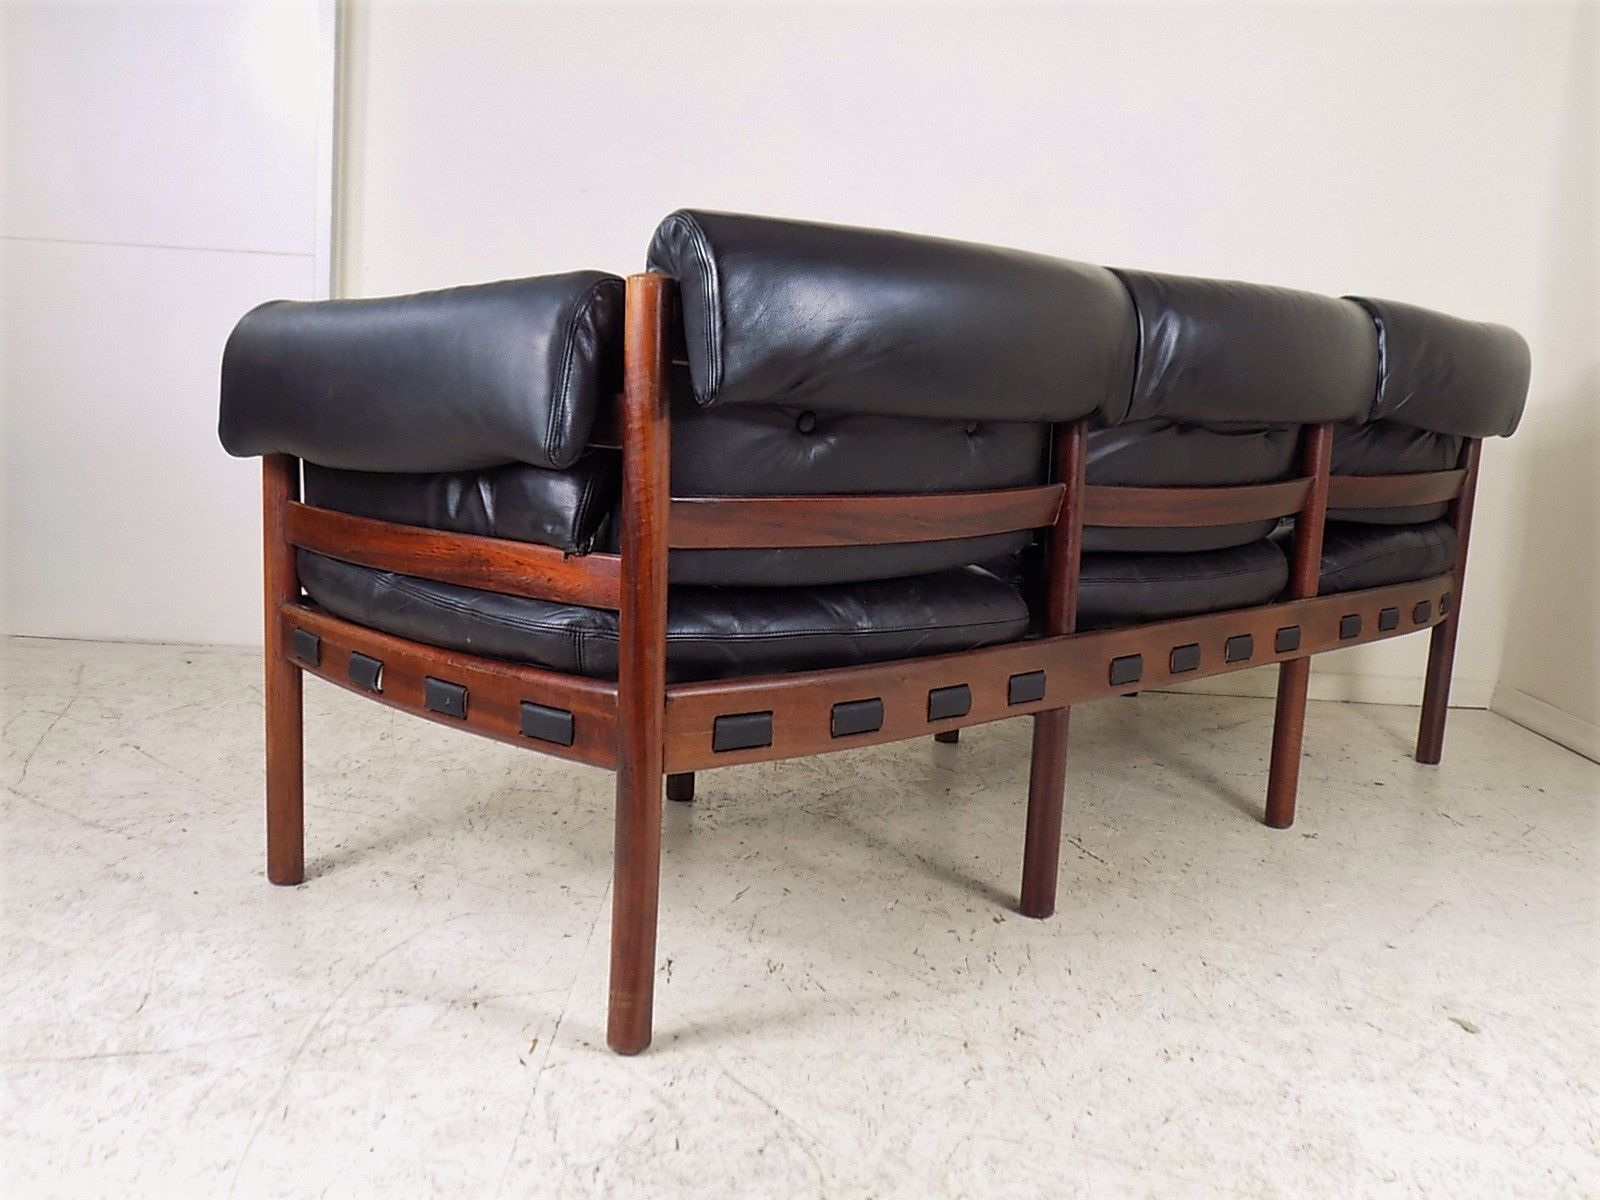 Rosewood And Leather Sofa From Coja 1960s For Sale At Pamono